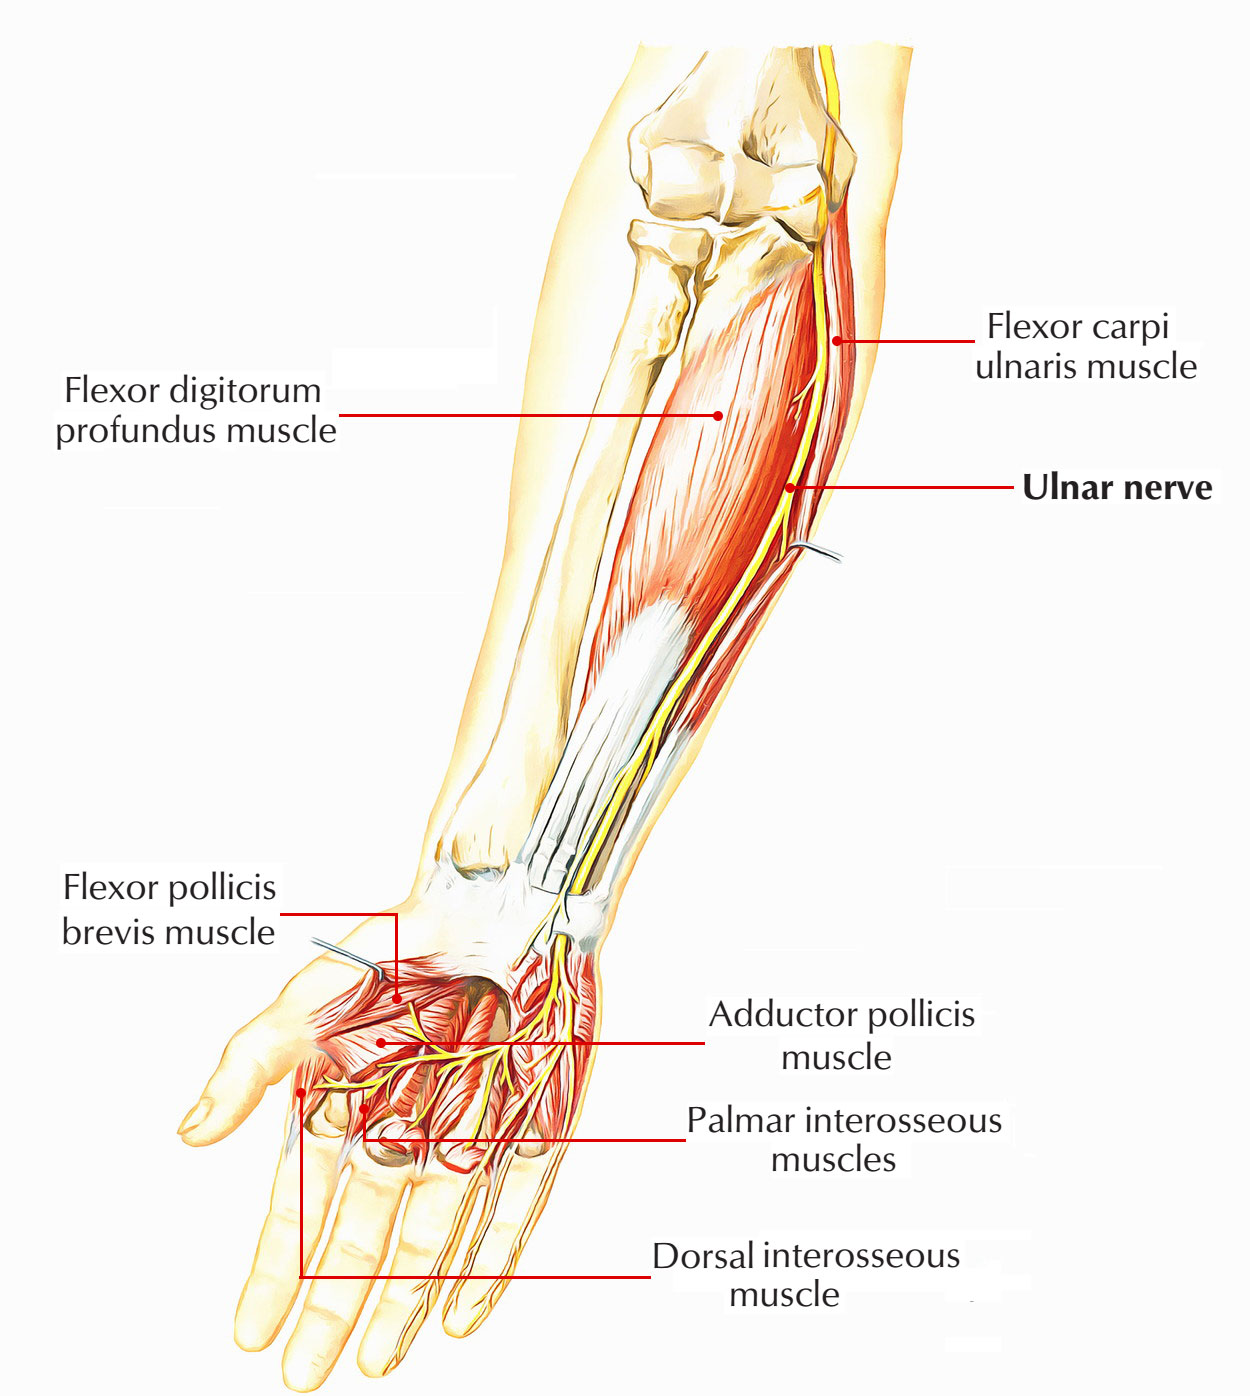 ulnar nerve diagram xentec hid wiring easy notes on learn in just 4 minutes forearm